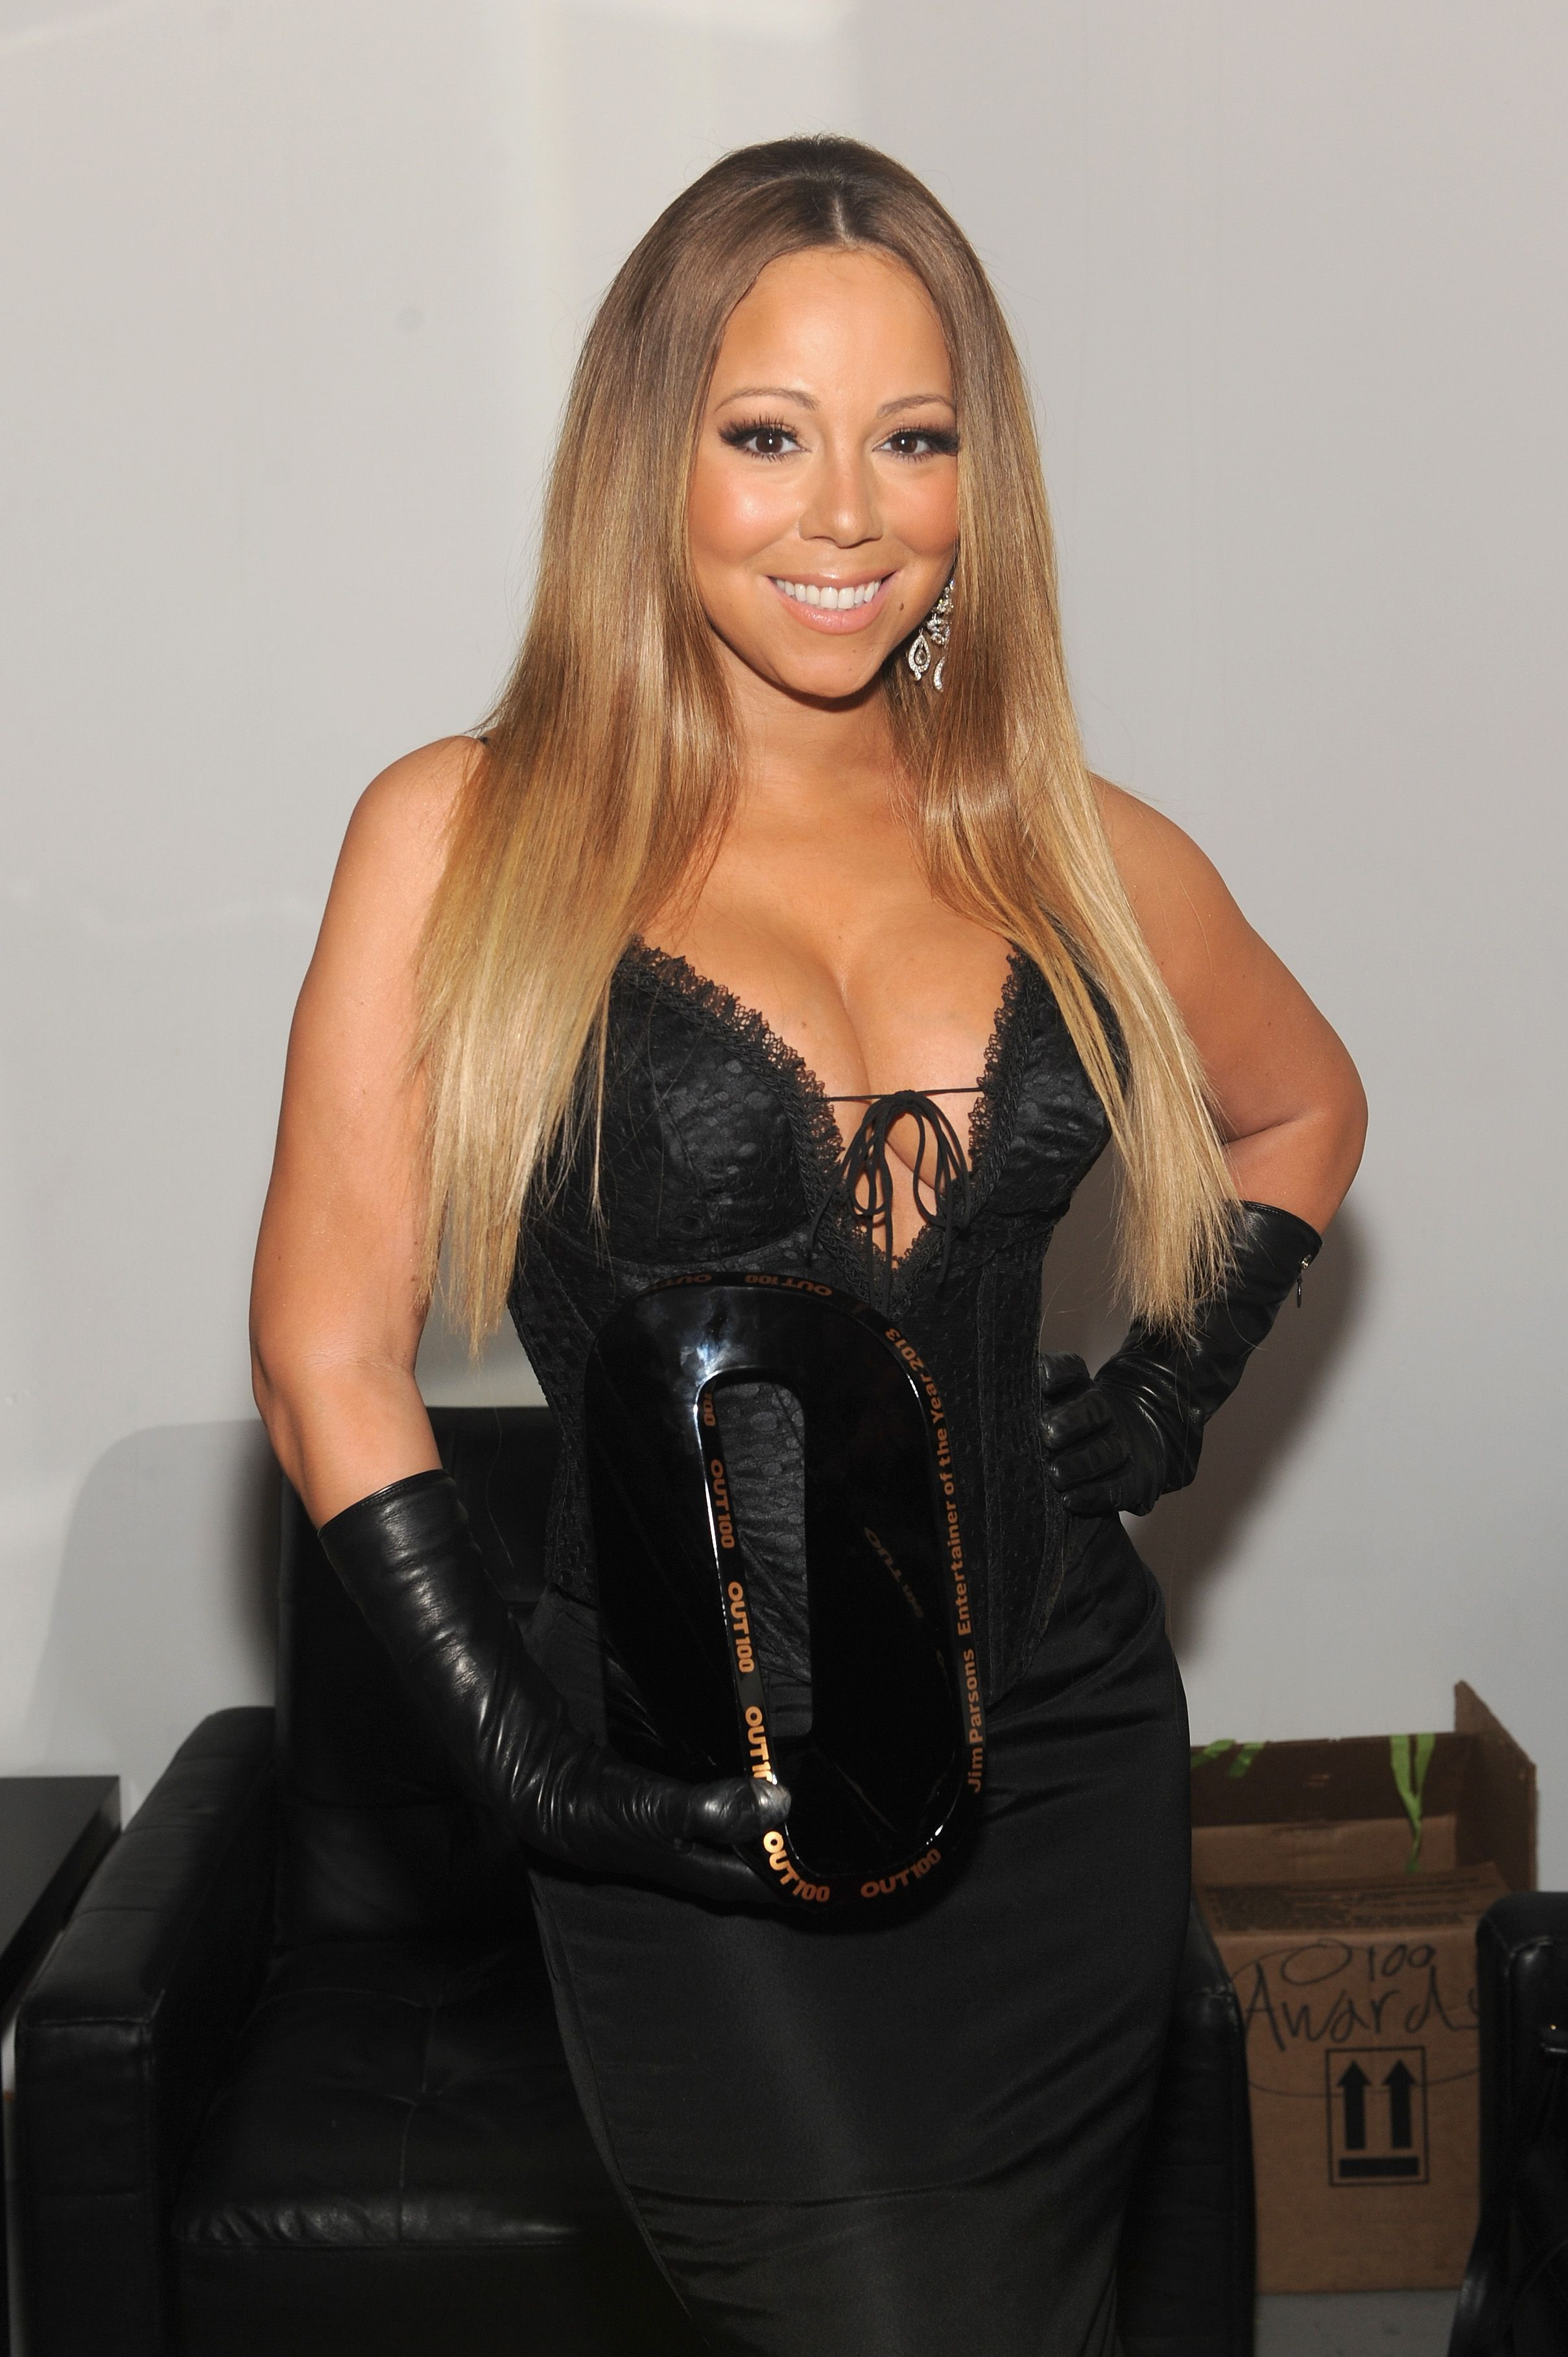 Mariah Carey during the 19th Annual Out100 Awards presented by Buick at Terminal 5 on November 14, 2013 in New York City  | Photo: Getty Images